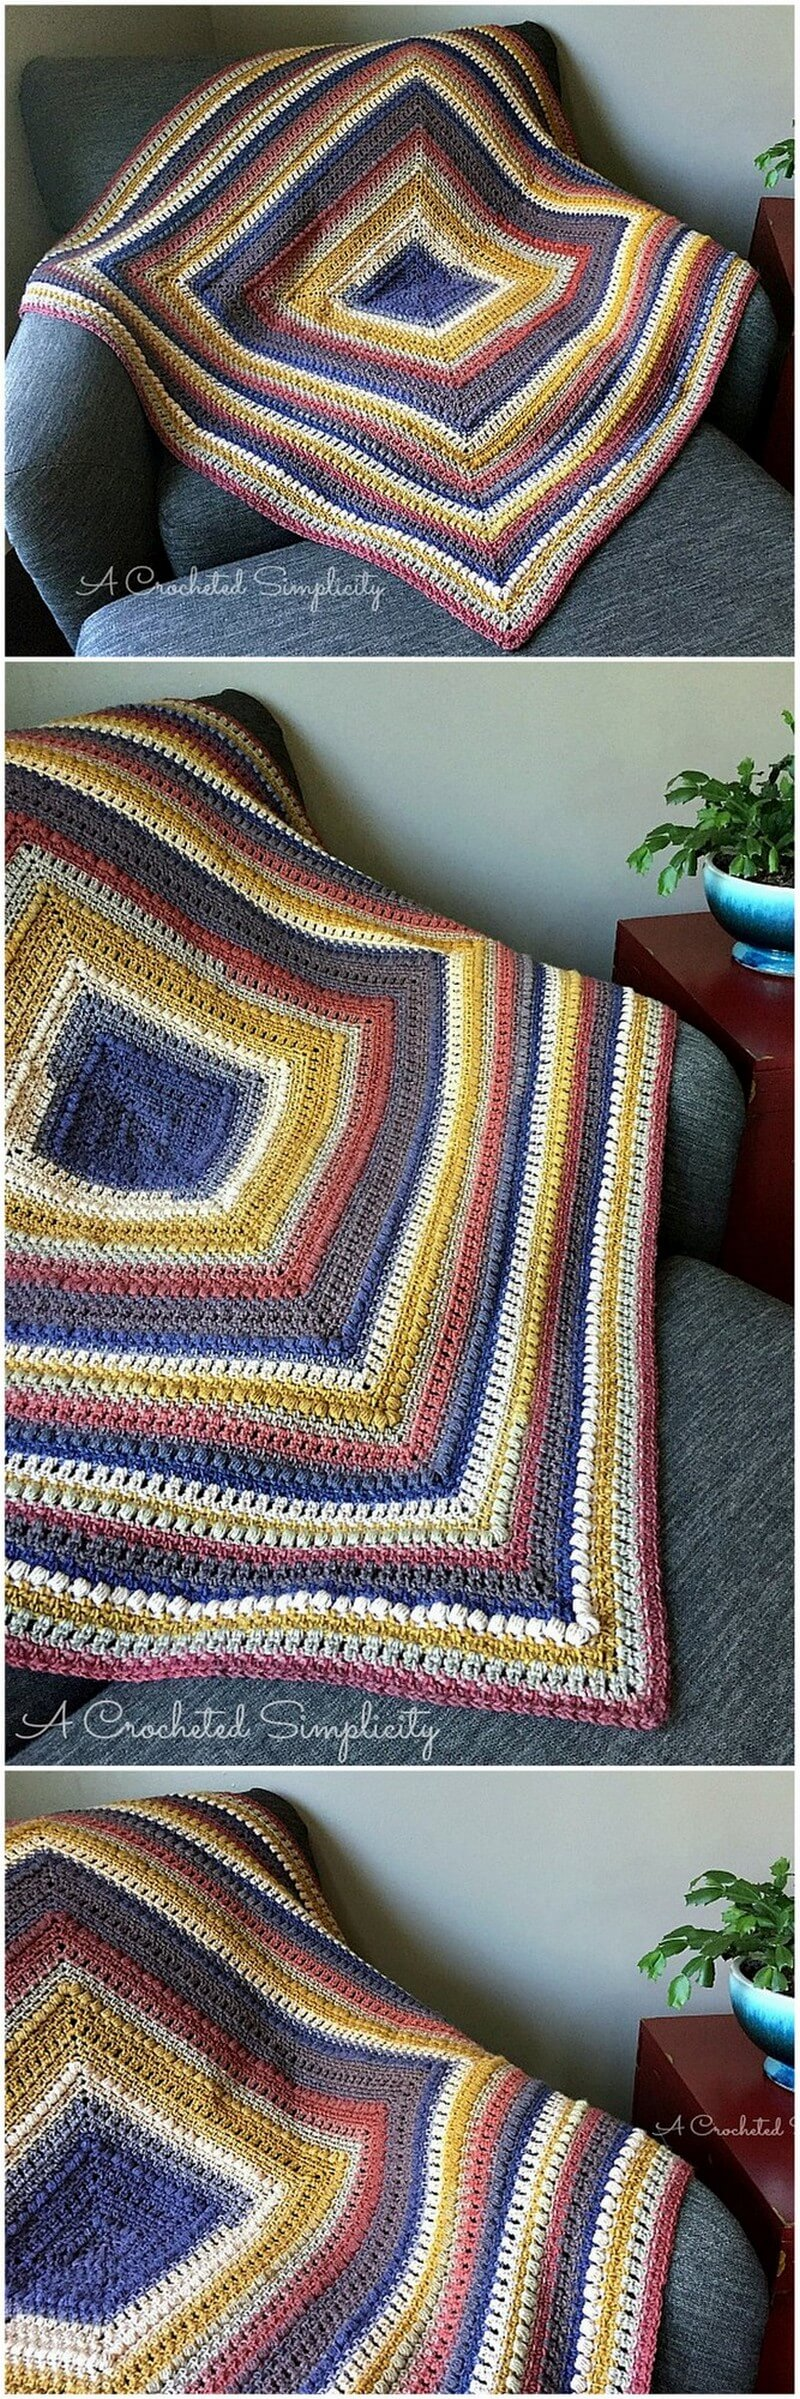 Easy Crochet Blanket Pattern (55)